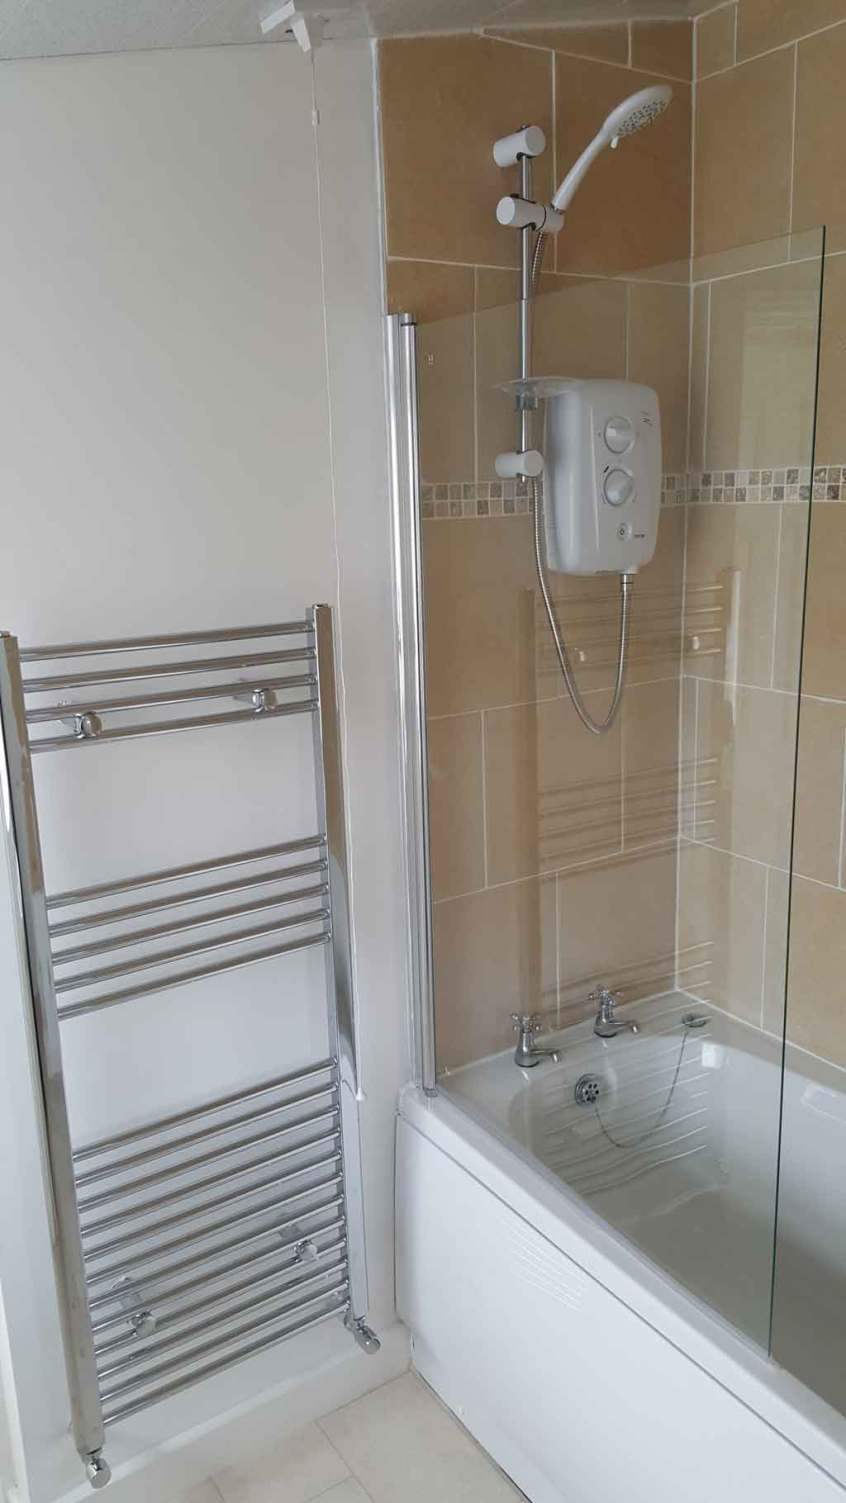 HMO Shower Room